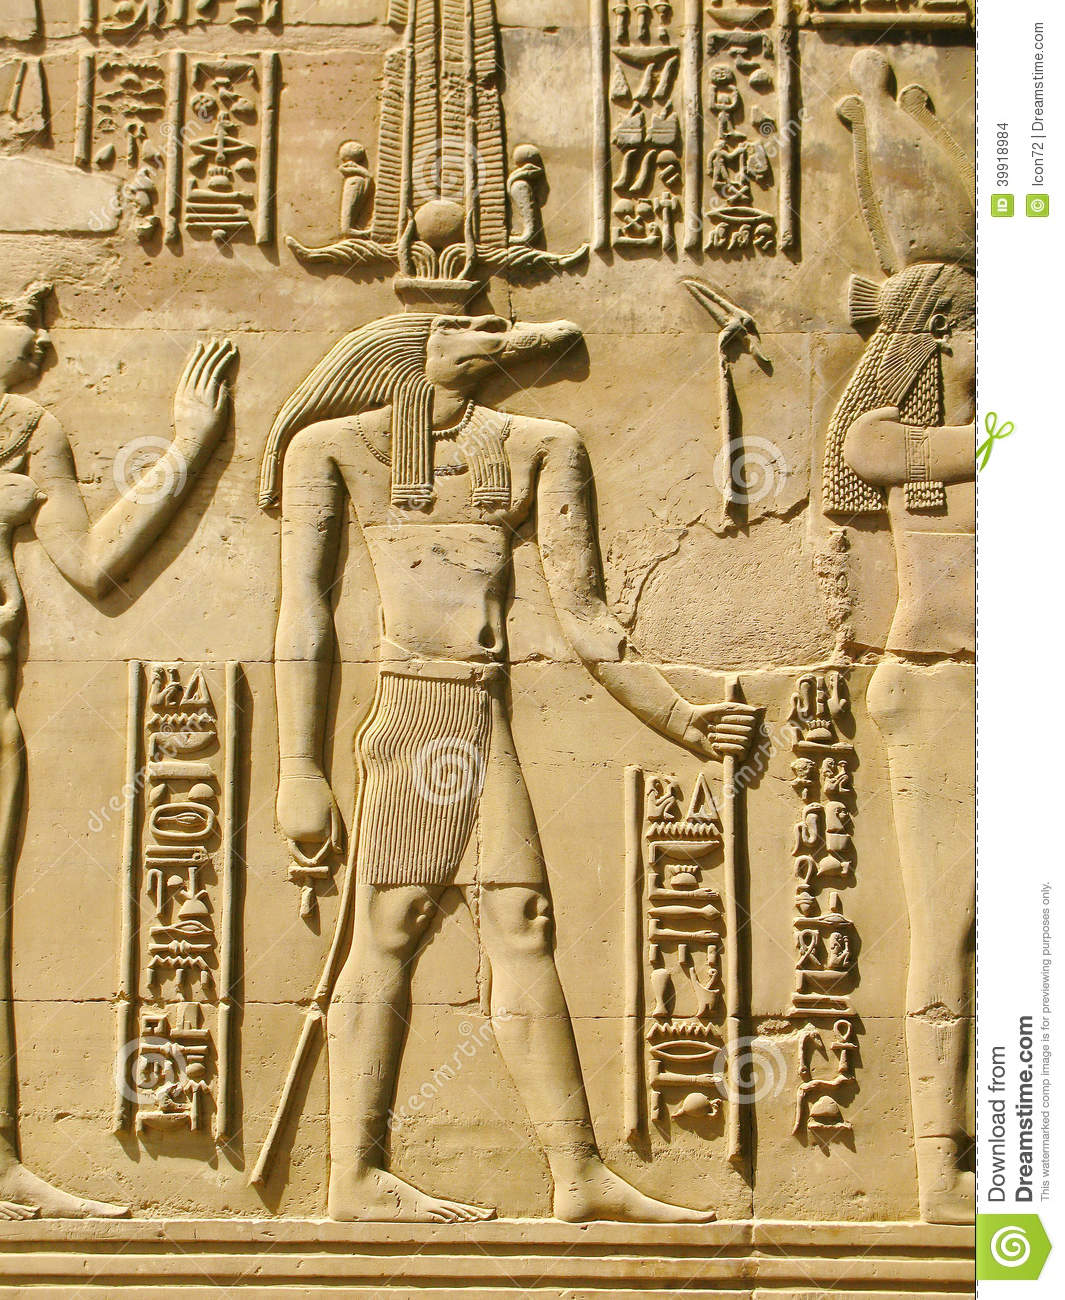 sobek ndash hieroglyphic inscriptions - photo #20